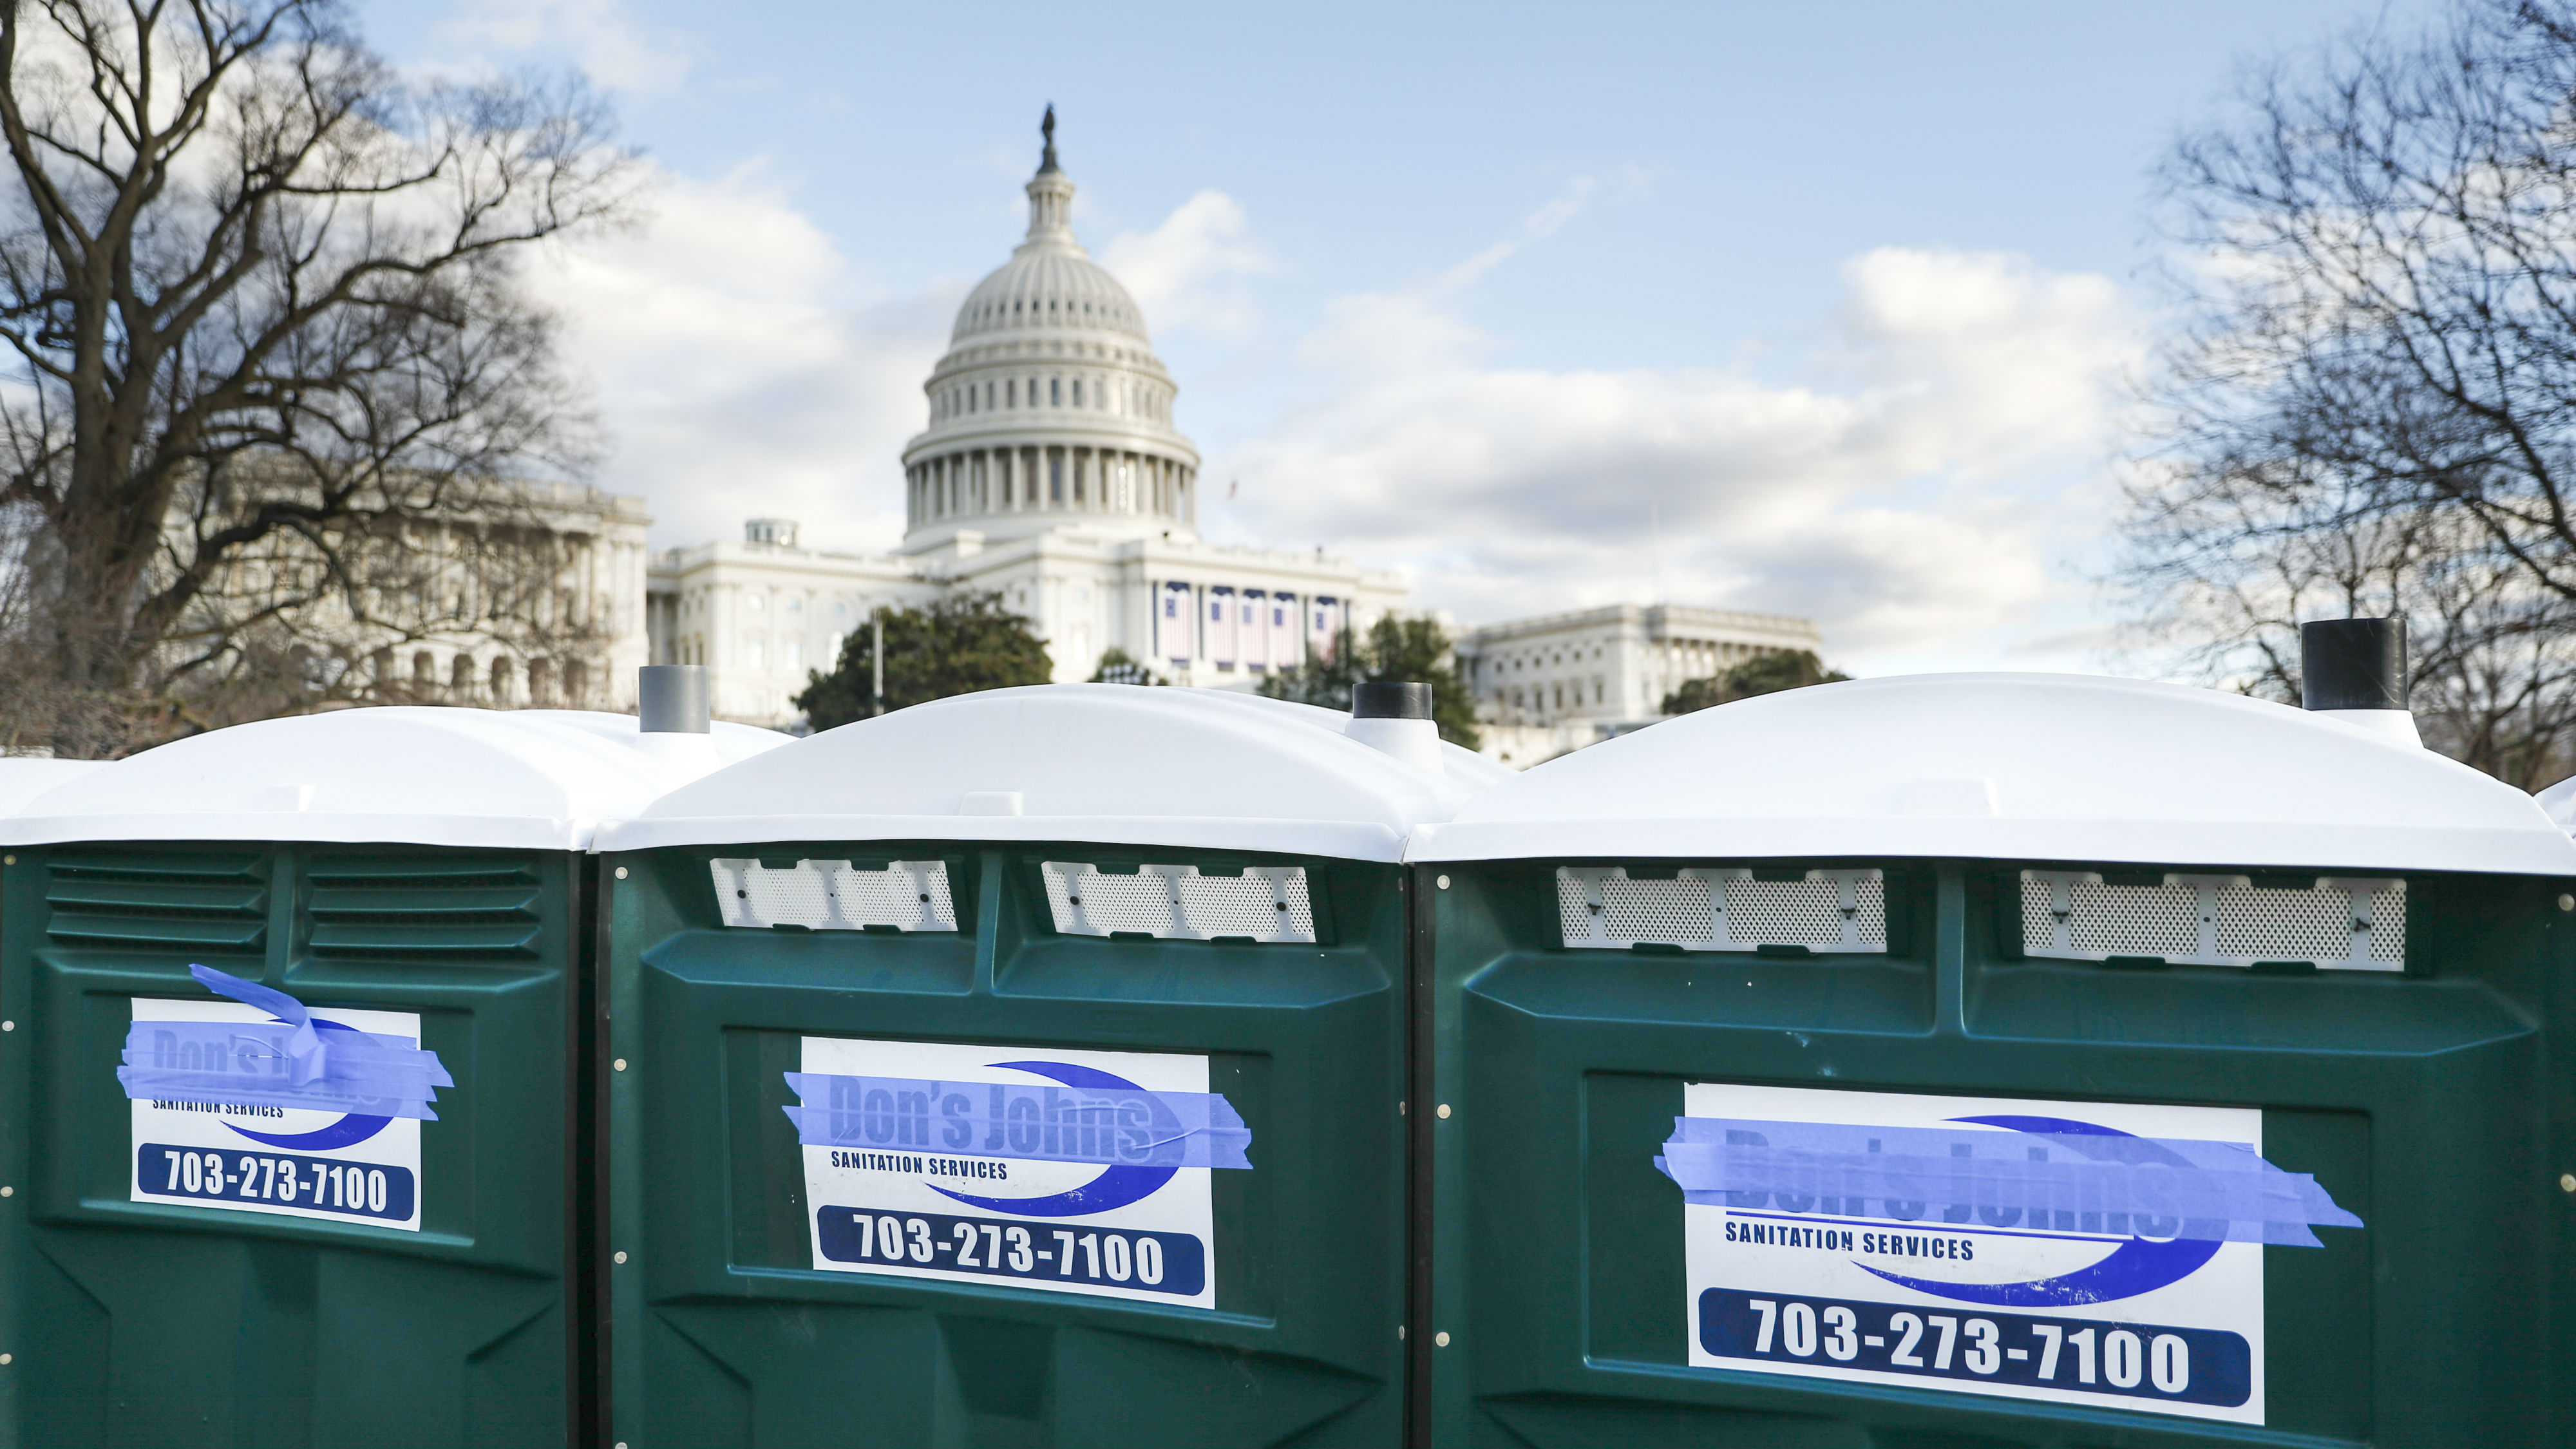 "Portable toilets have their brand name ""Don's Johns"" covered with masking tape as preparations continue for Friday's presidential inauguration, Wednesday, Jan. 18, 2017, on Capitol Hill in Washington."